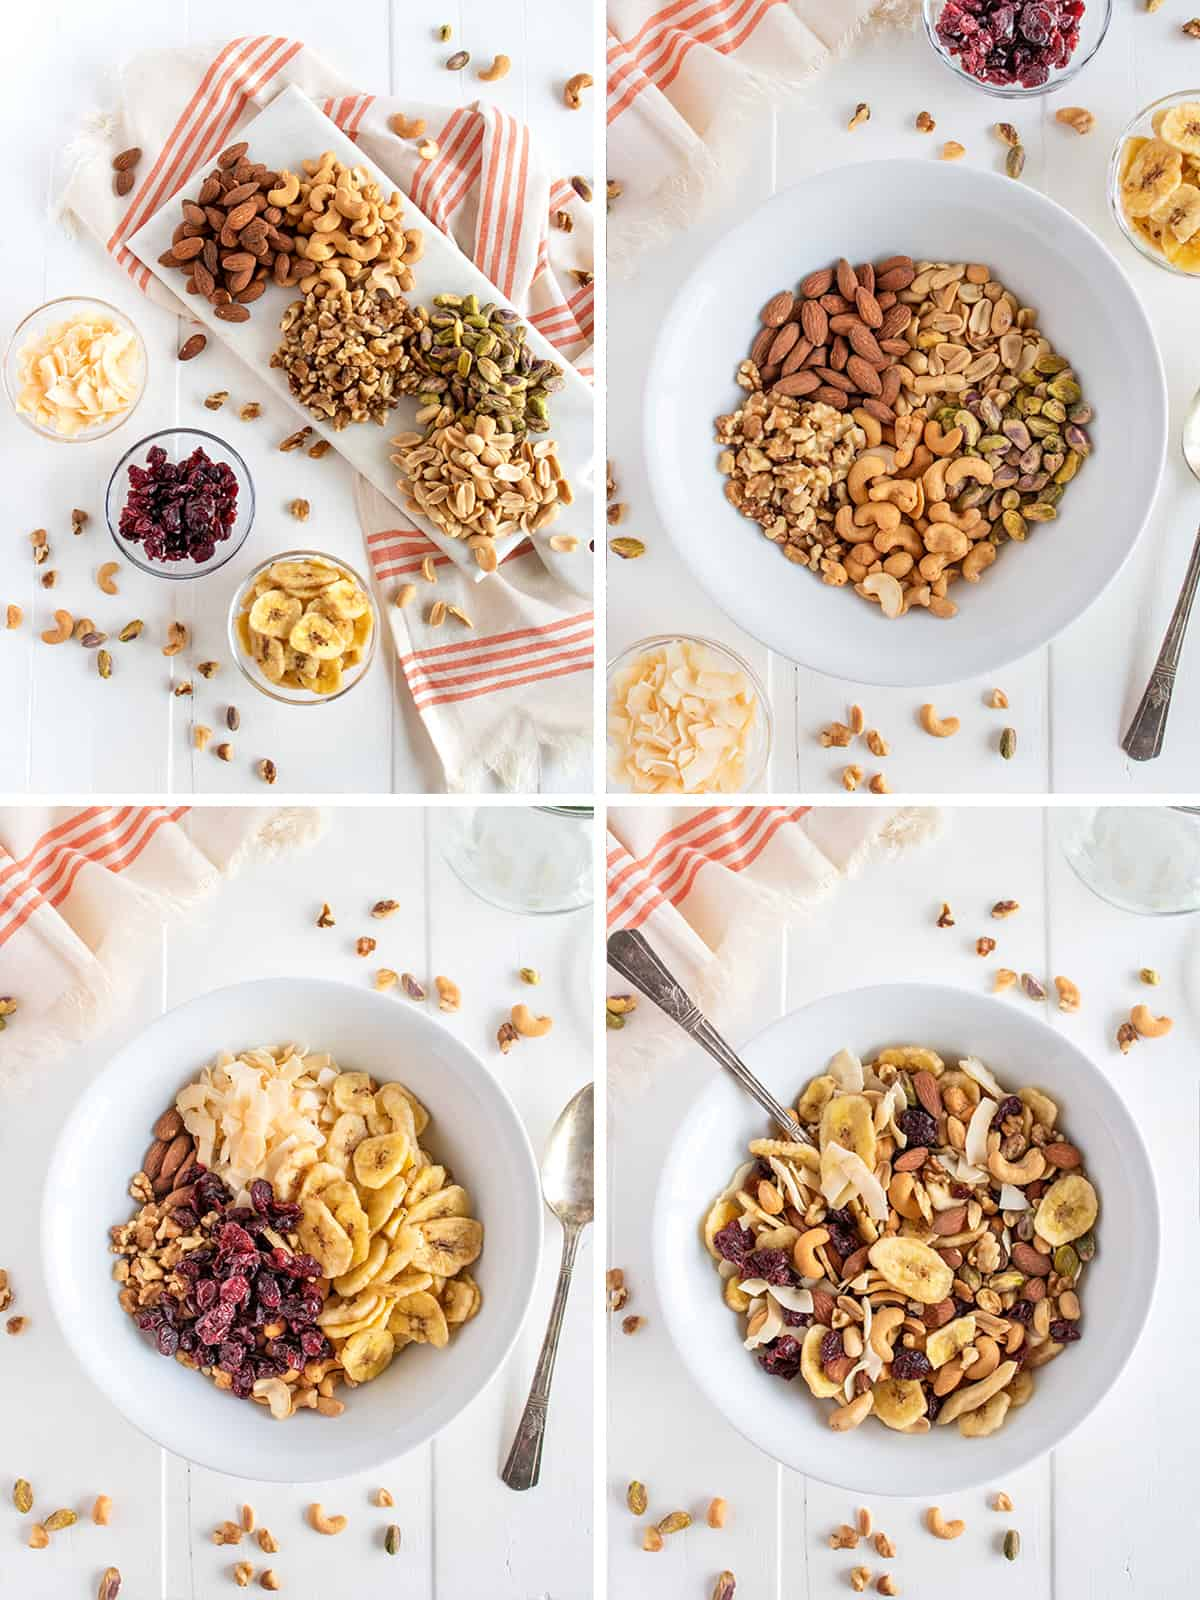 Healthy Weekend Trail Mix by The BakerMama